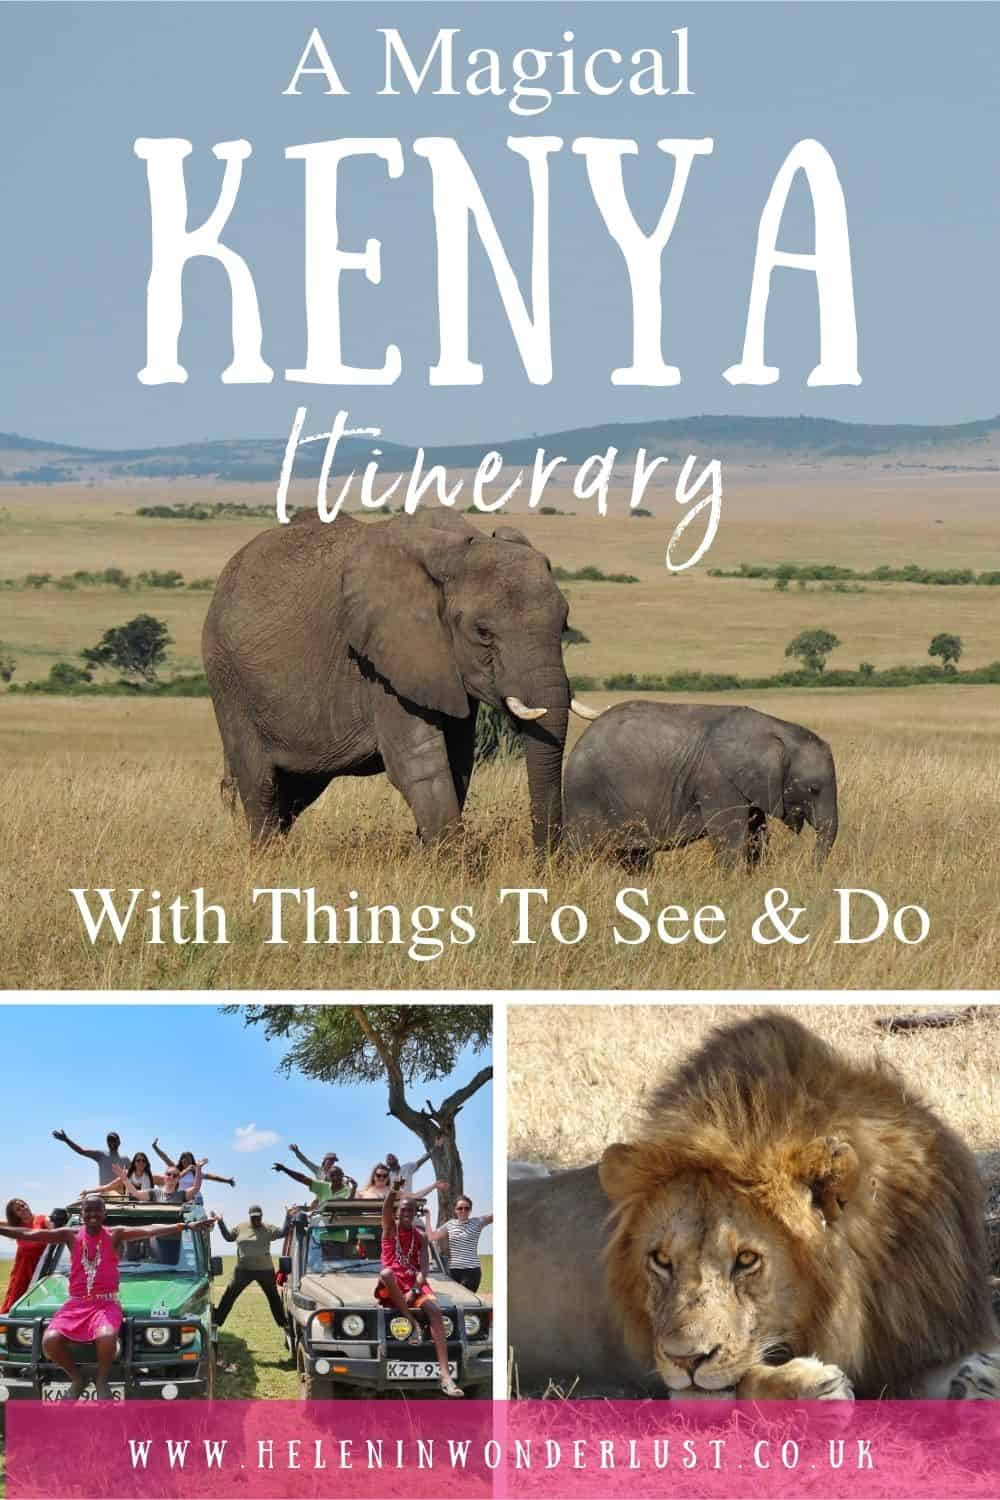 A Magical Kenya Itinerary with Things To See & Do